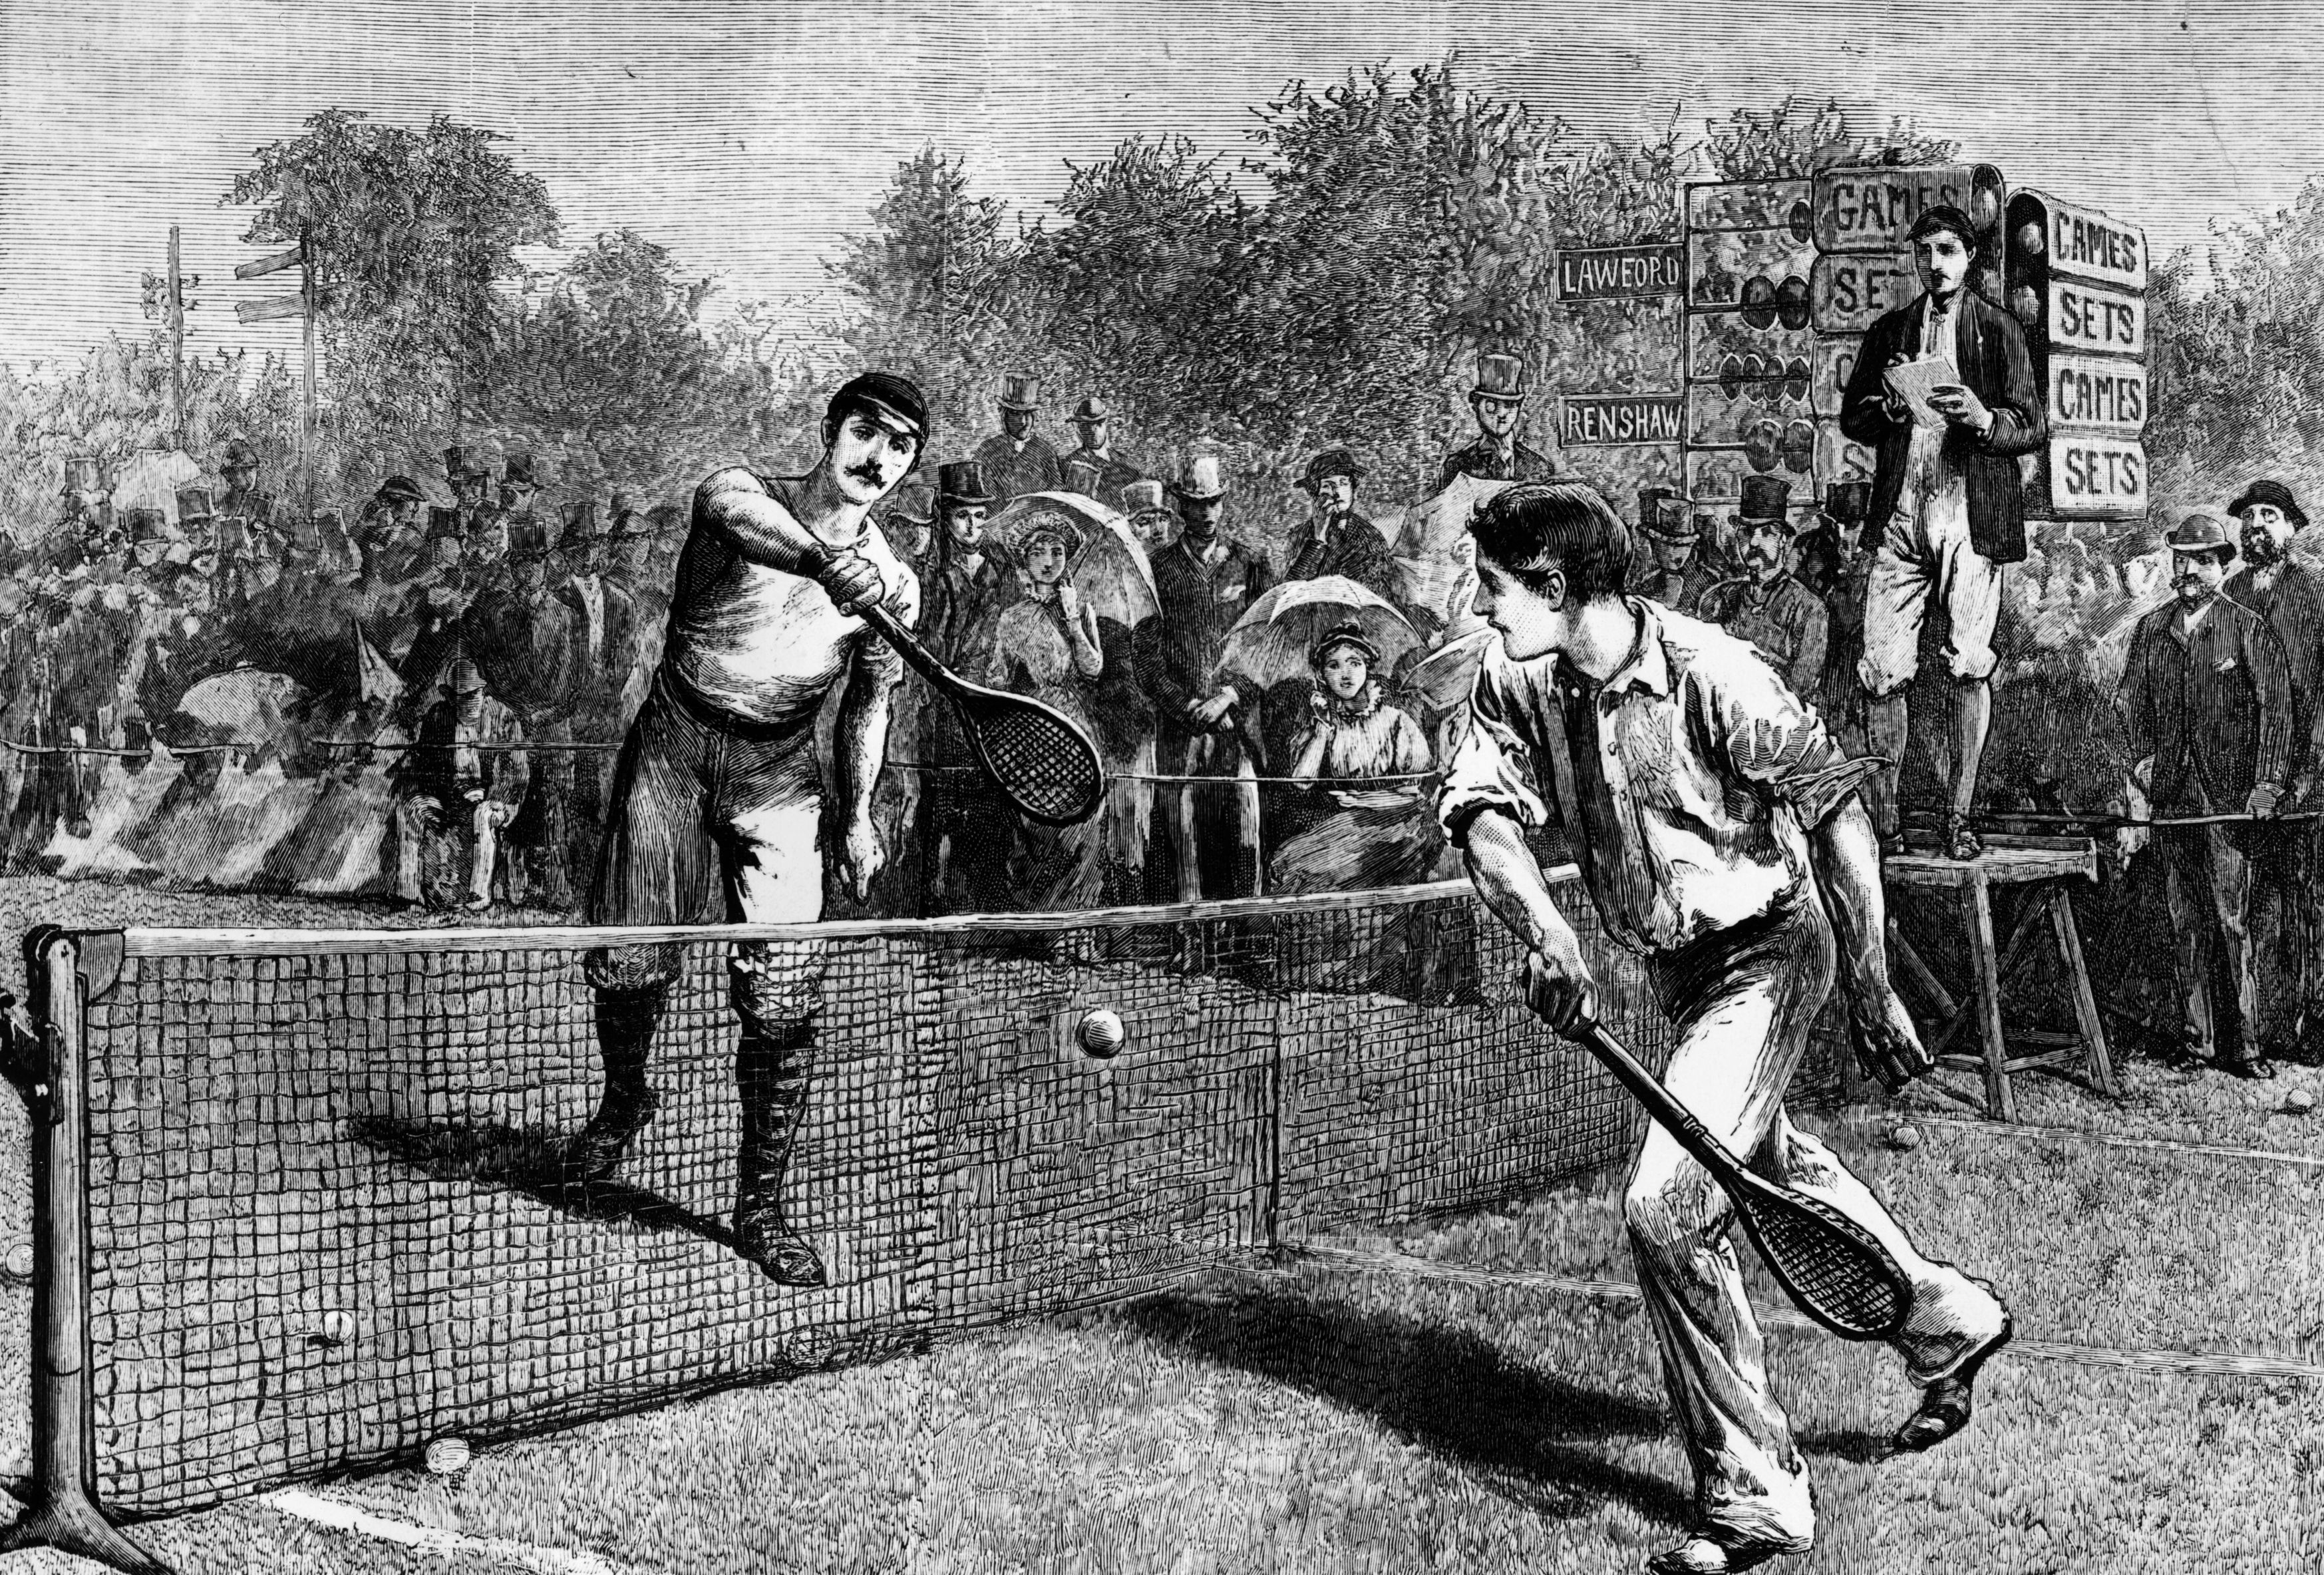 British tennis player William Renshaw and H F Lawford playing for the Men's Singles Title at Wimbledon, which Renshaw won. Original Publication: The Graphic  (Hulton Archive/Getty Images)